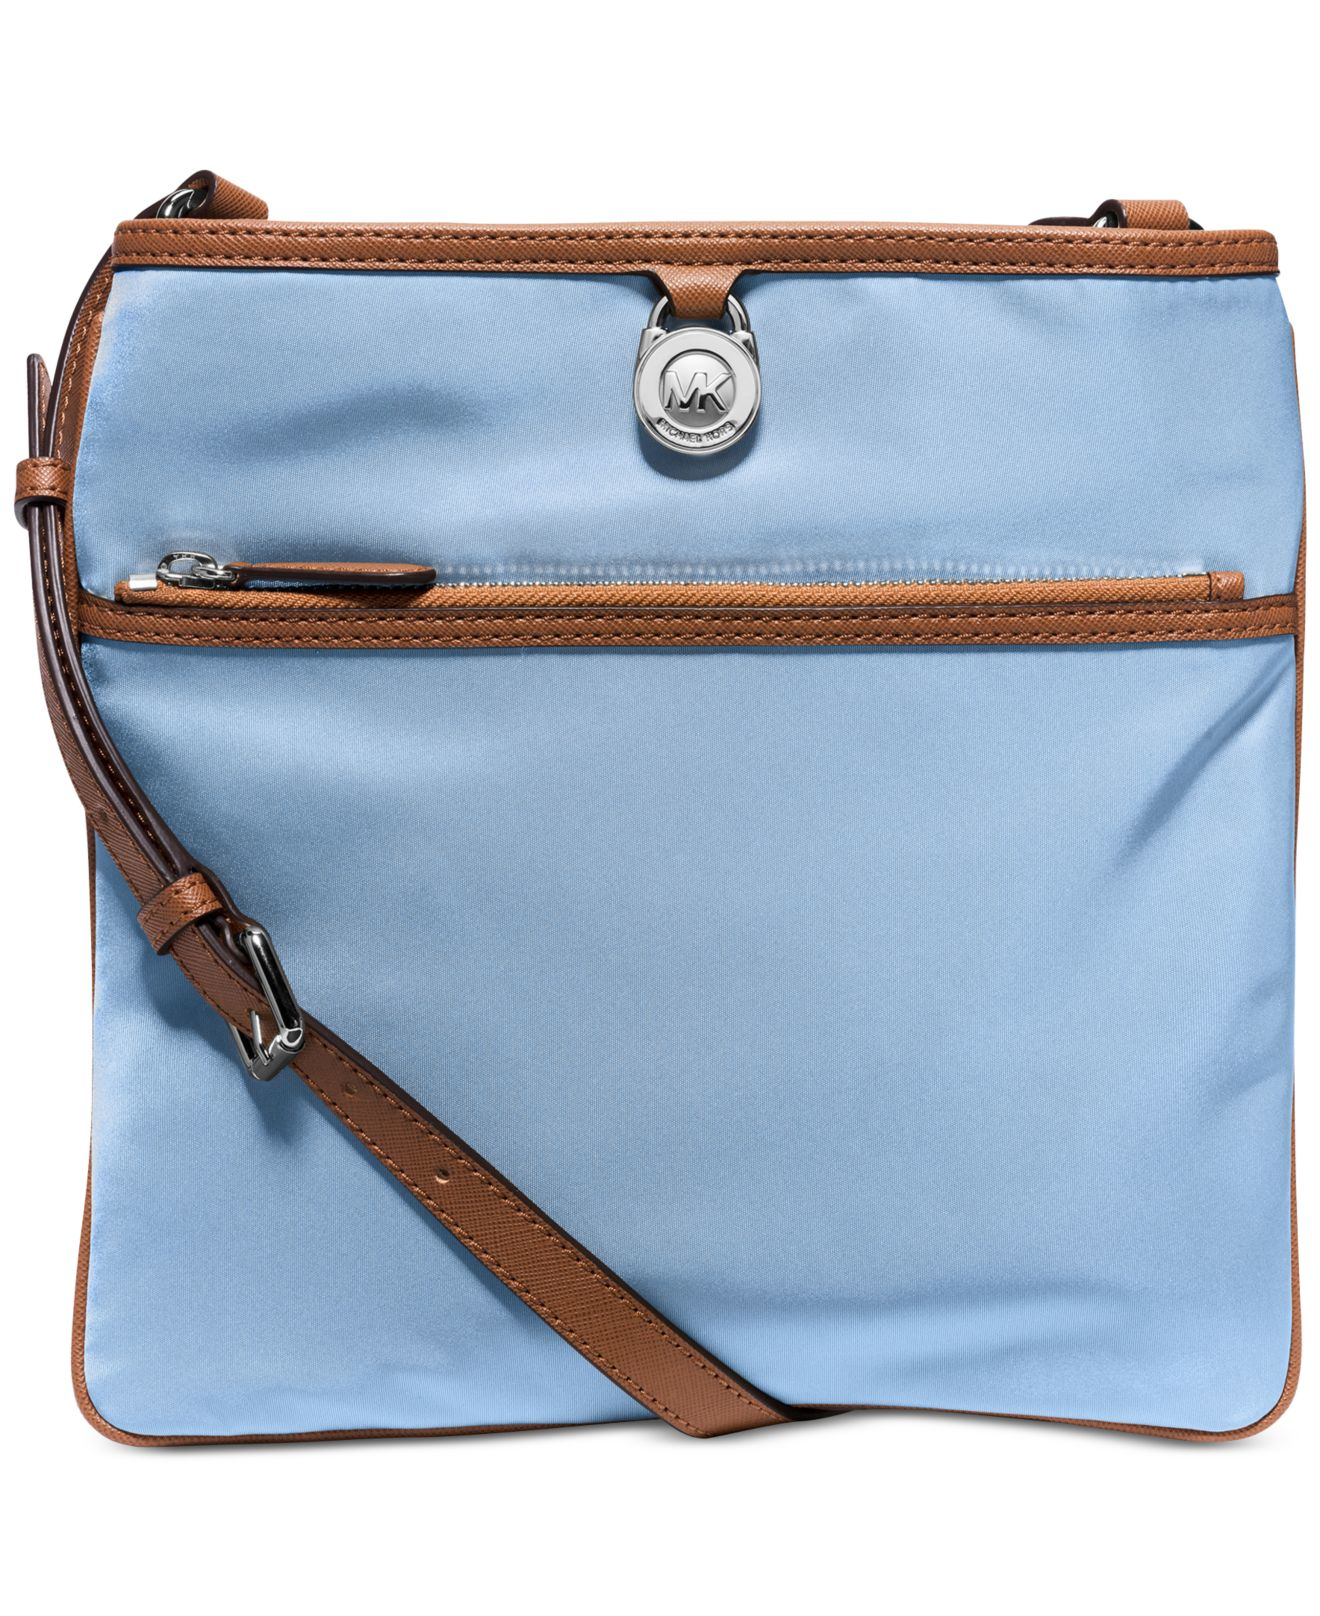 3f1e70ab85a5 ... good lyst michael kors michael kempton large pocket crossbody in blue  174b1 ae153